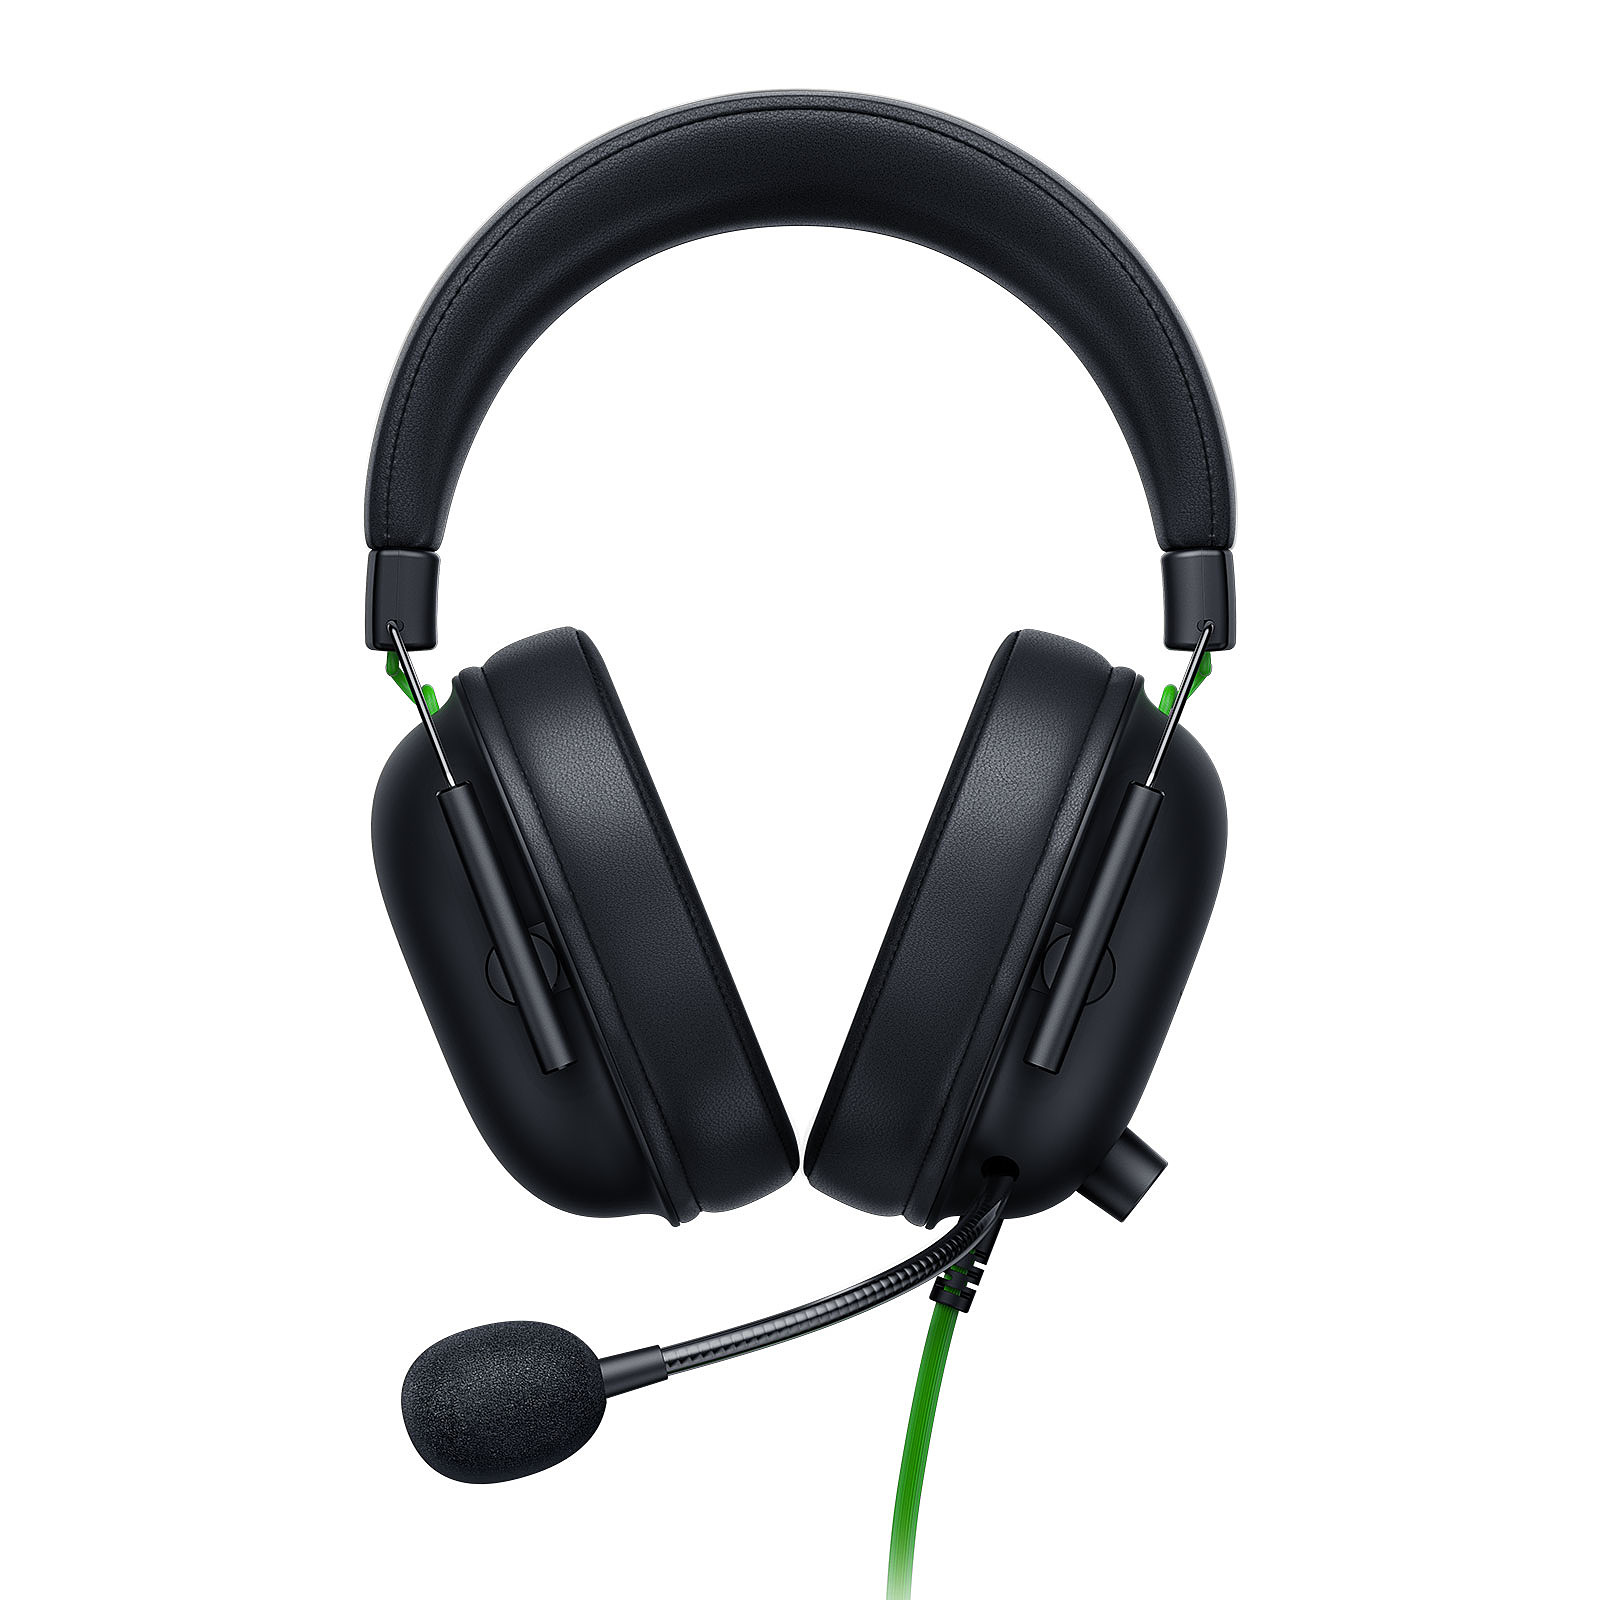 Razer Blackshark V2 X 7.1 Surround Noir - Micro-casque - 3